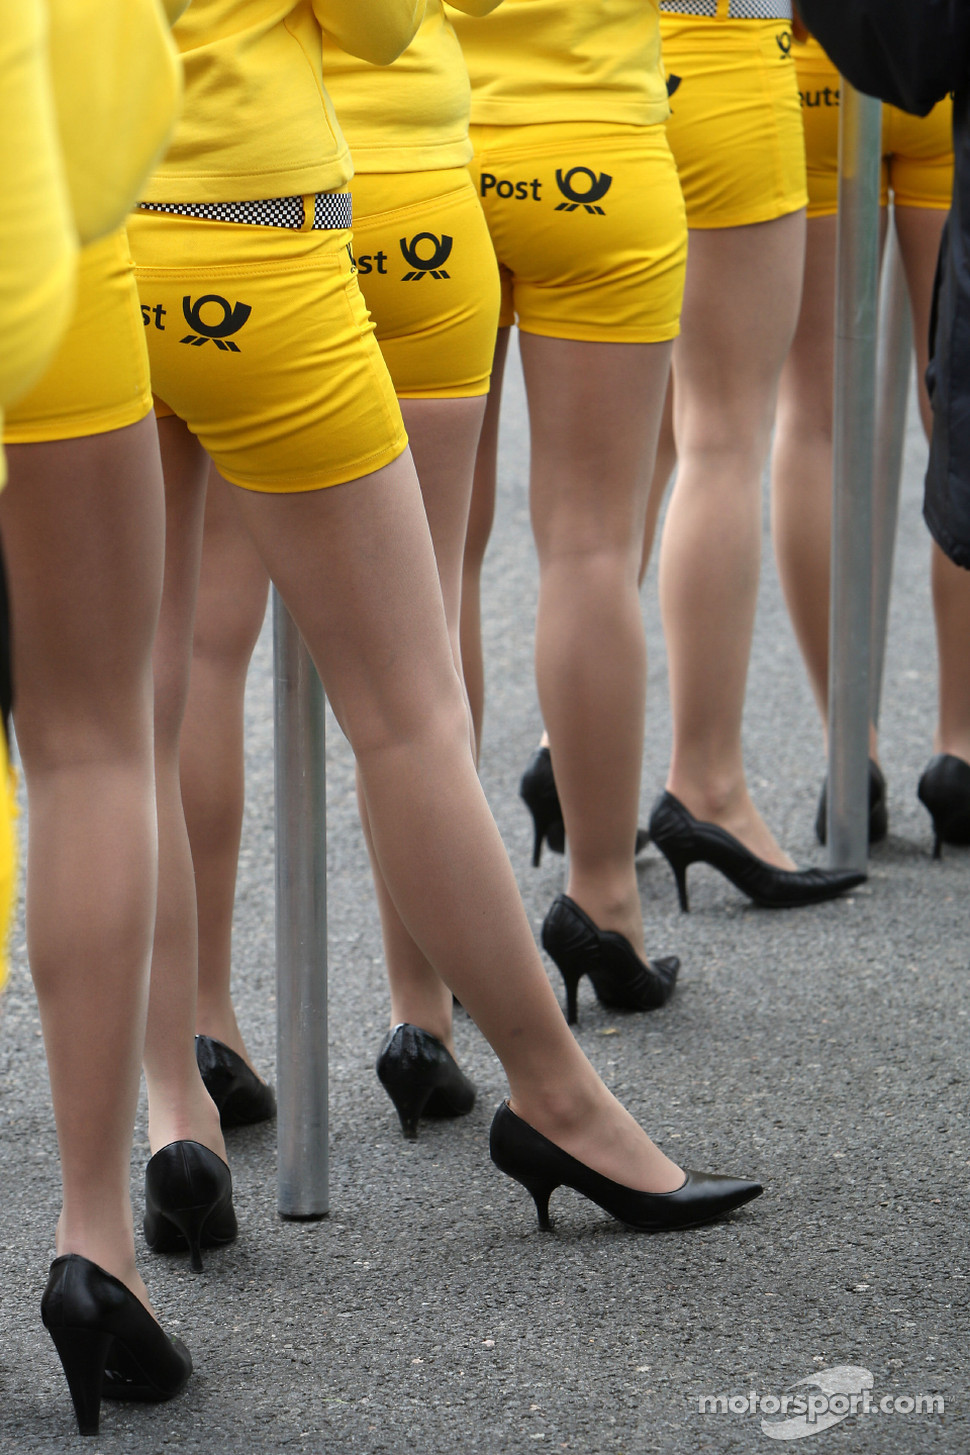 Deutsche Post grid girls